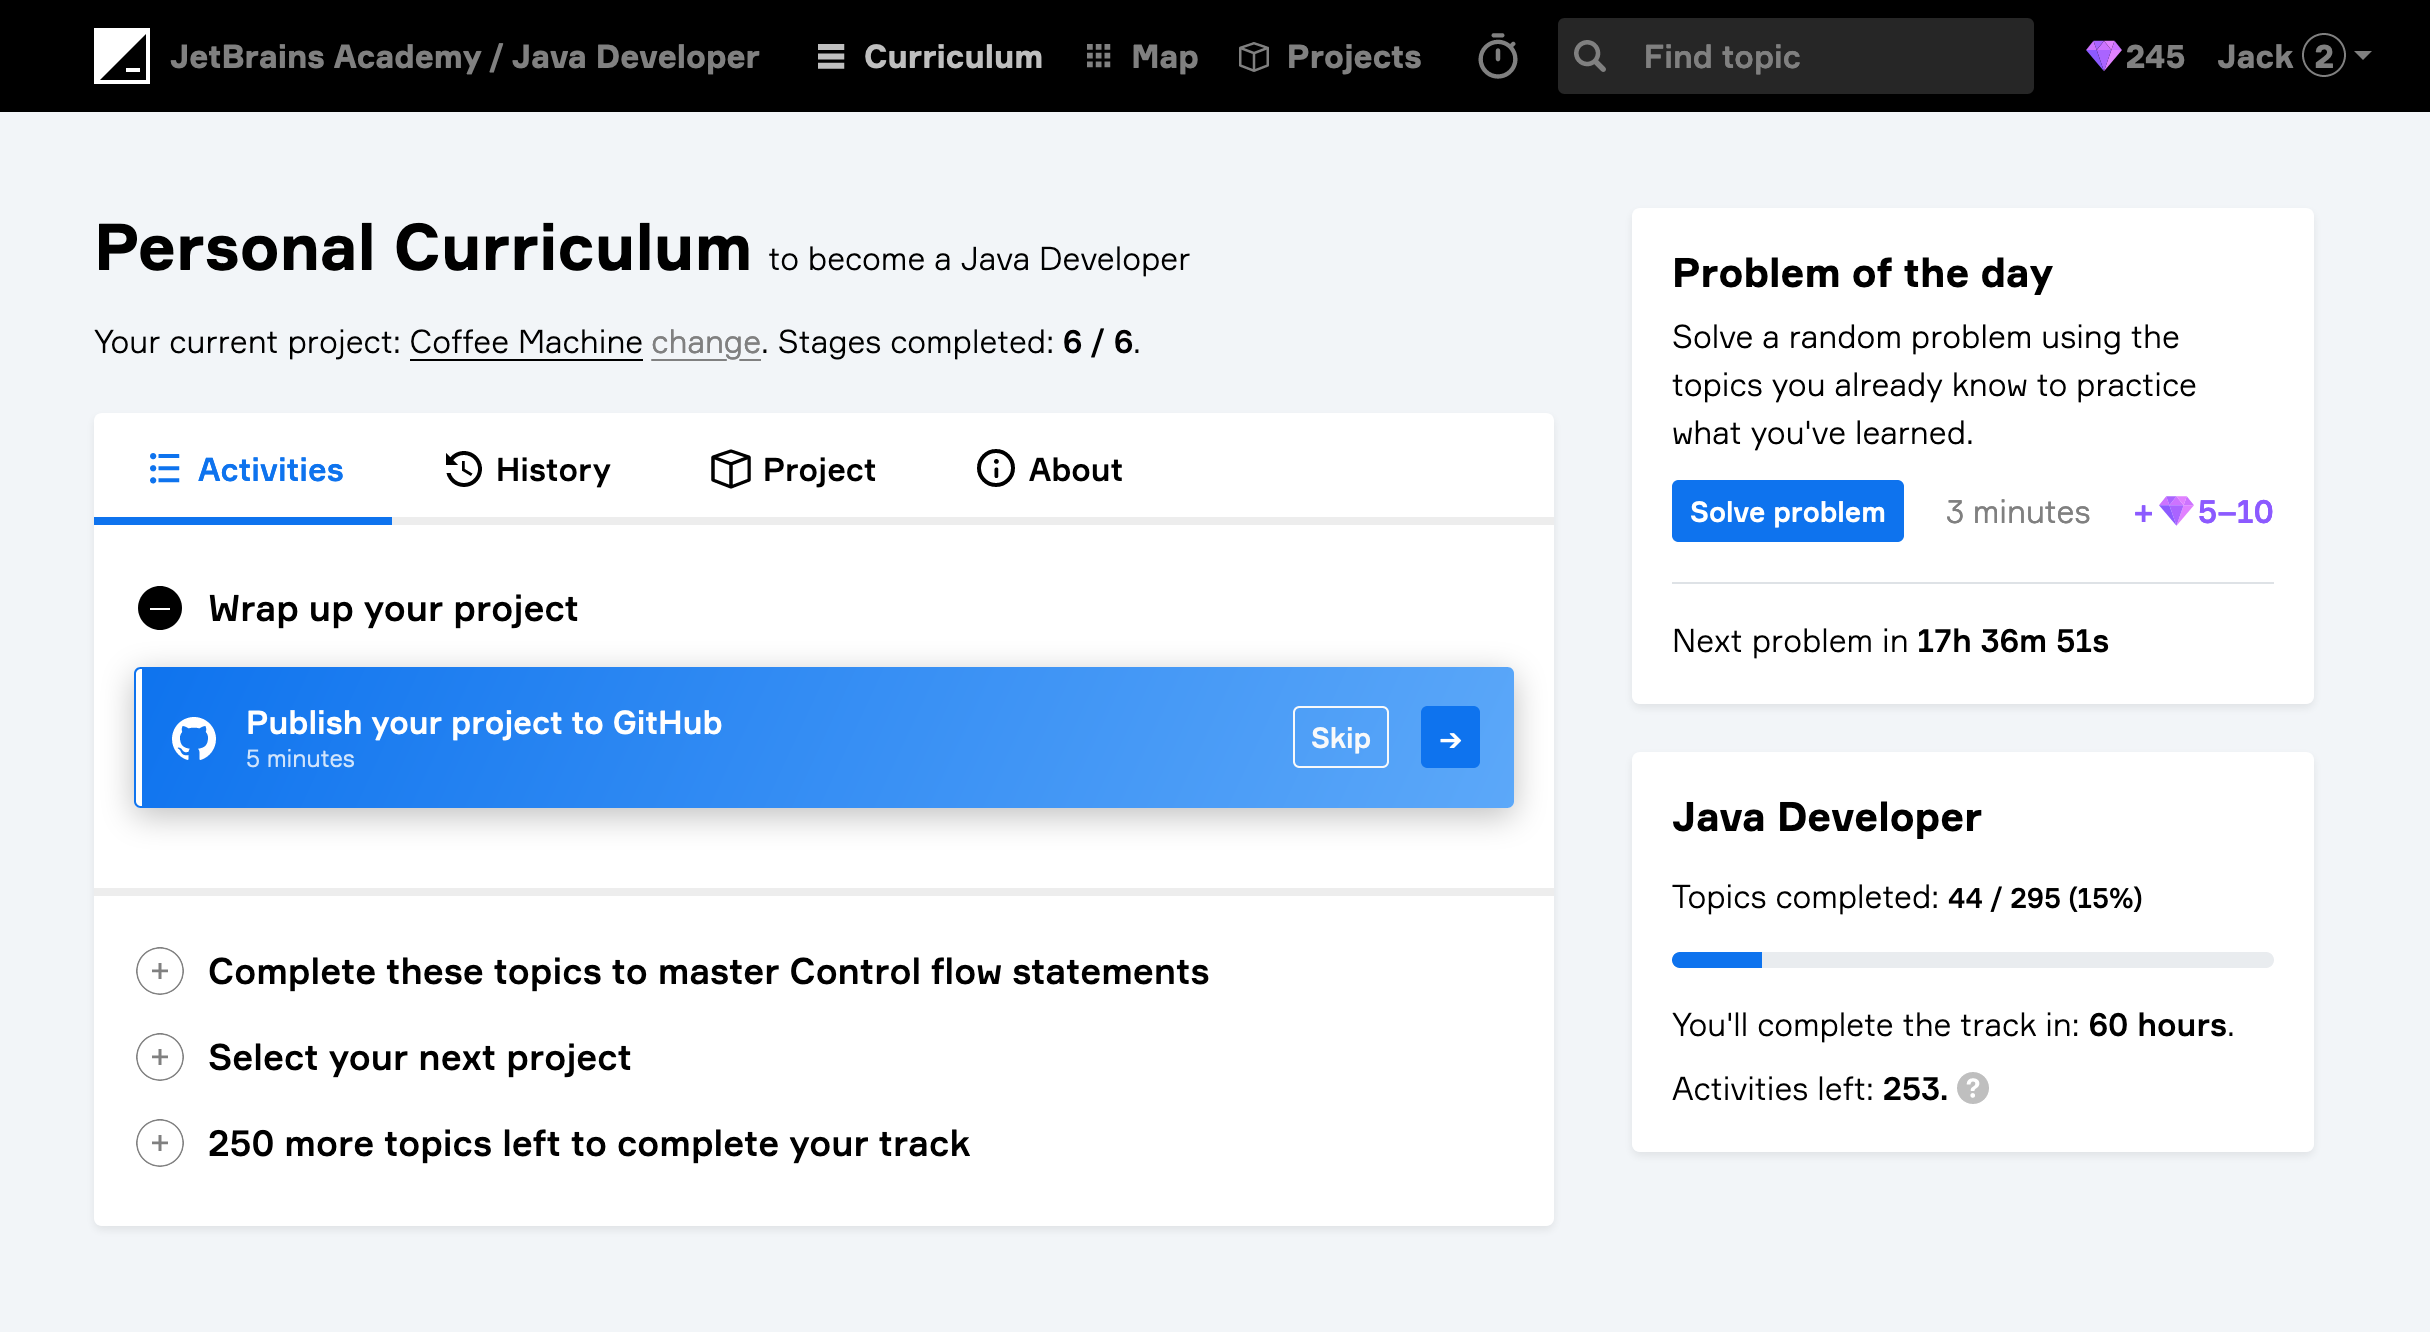 edu jba publish to github java